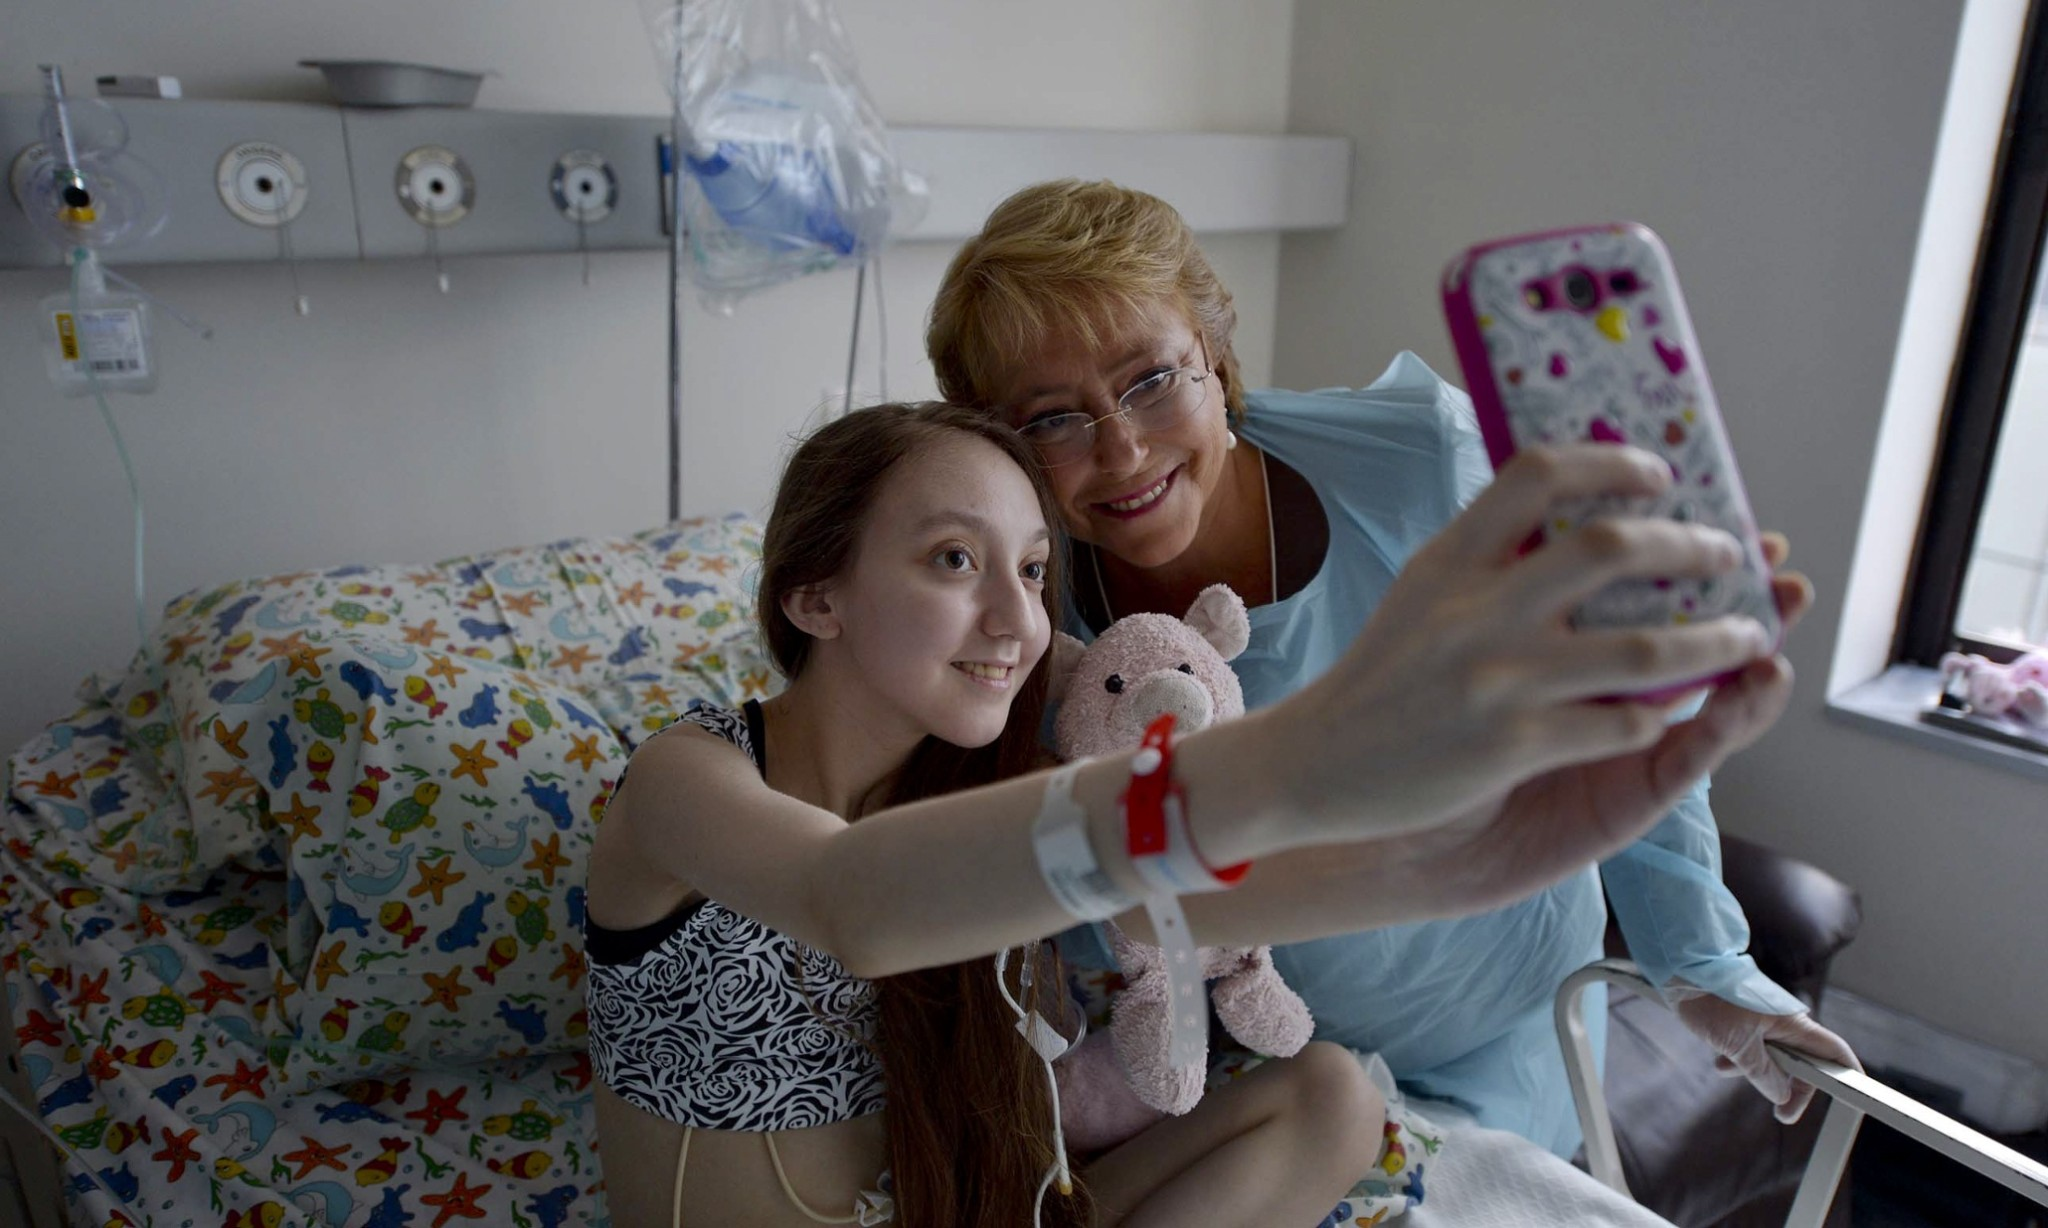 Chile president visits girl with cystic fibrosis who posted euthanasia video